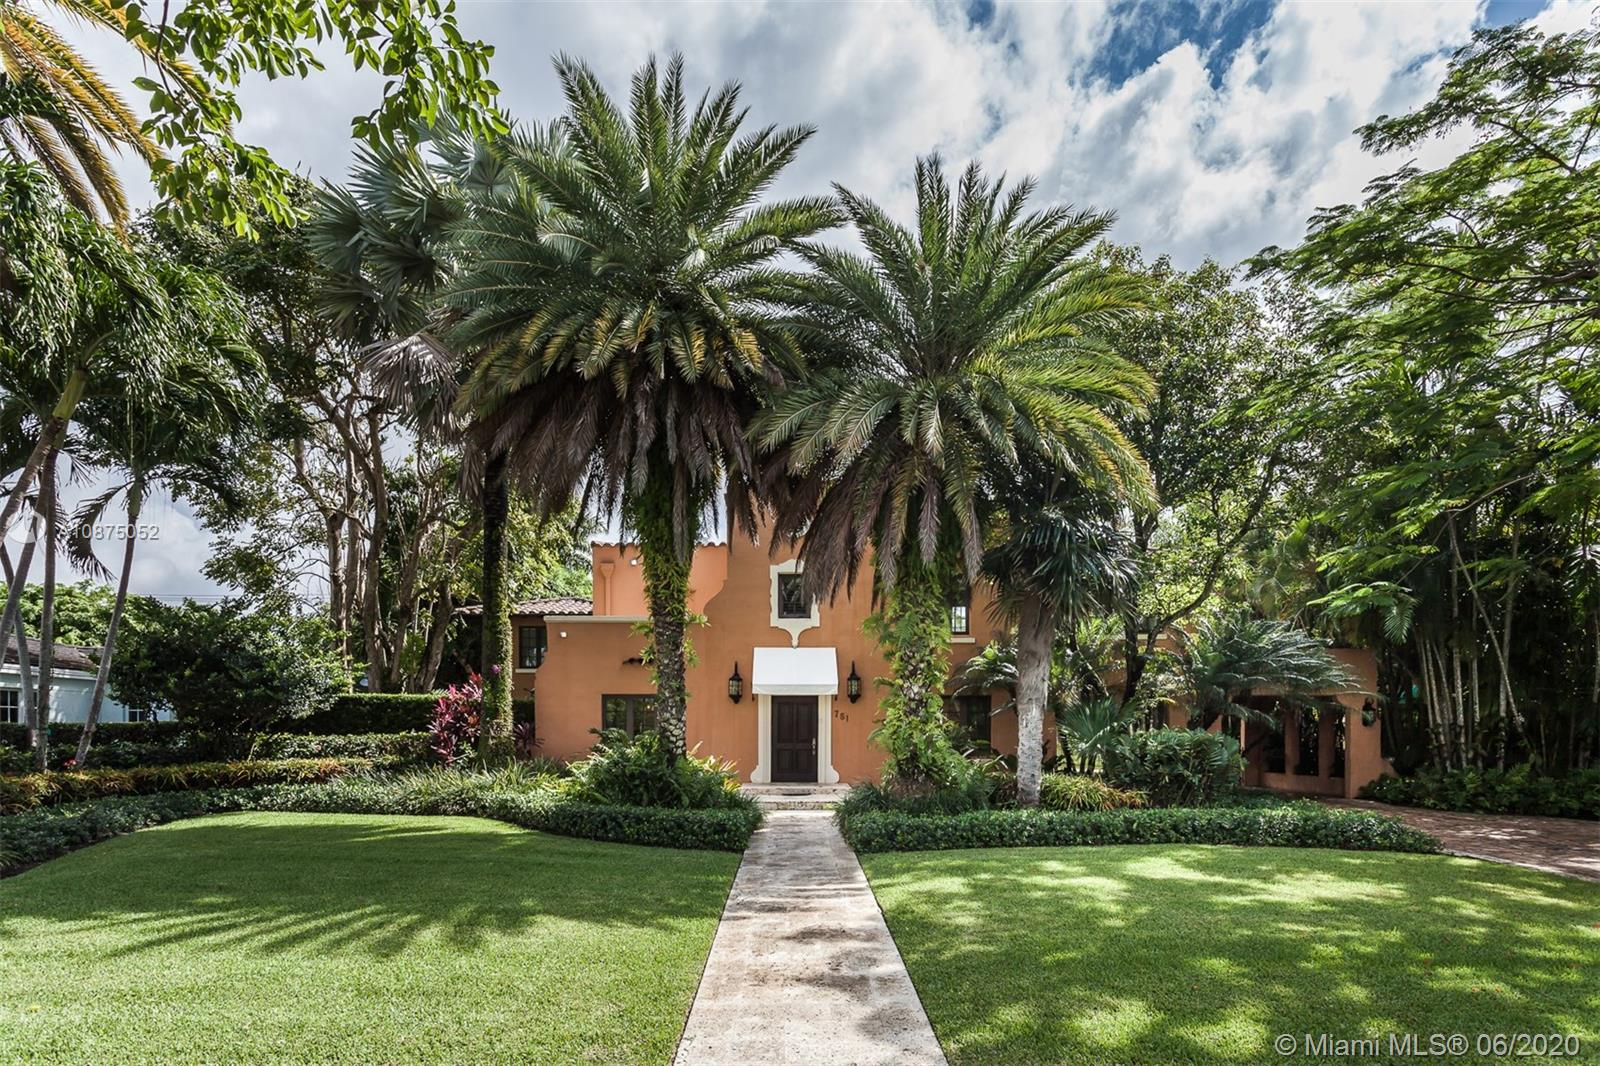 Situated on North Greenway Drive overlooking the Granada Golf Course, the 5-BD, 4.5-BA, 4,987 SqFt historic home is of unparalleled provenance and available for the first time in 43 years. United aesthetically with the look and historical significance of the City of Coral Gables, this landmark home was the 8th home built in the city. The two-story residence and 2BD/2BA guesthouse were completely renovated in 2005 with all the necessary enhancements, while preserving original architecture and charm. The renovation included all new plumbing, electrical, roof, impact windows/doors, chef's kitchen, HVAC system, flooring, and pool equipment. Several rooms in the home serve as entertainment areas, with ample space to display art and plenty of indoor/outdoor dining to accommodate up to 24 guests.